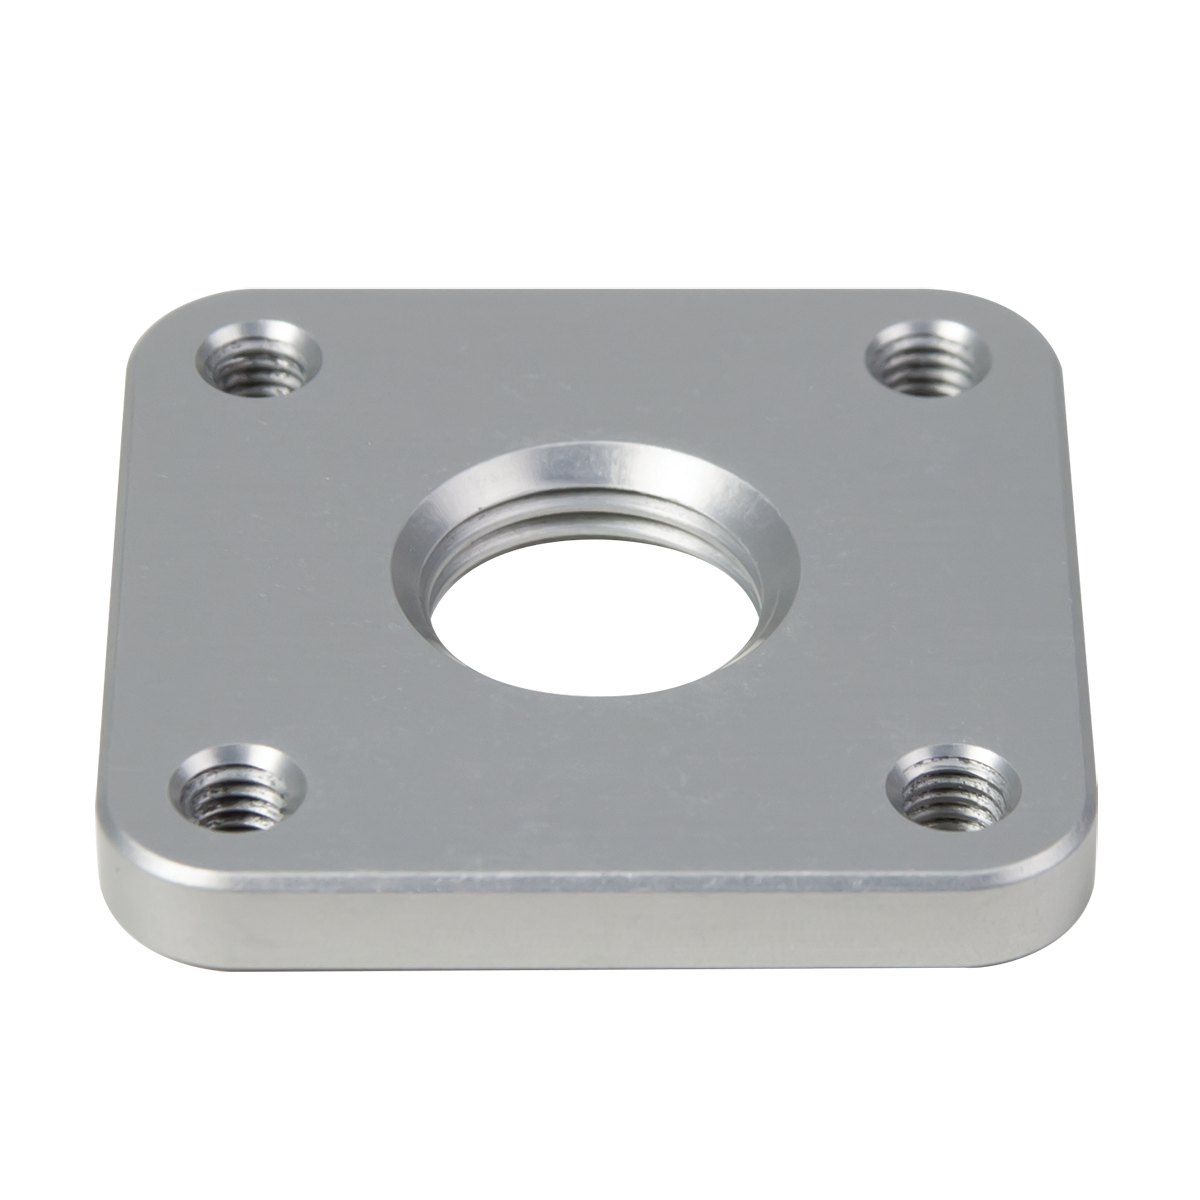 4-Hole Lamination Plate, Square, Threaded Hole, Al